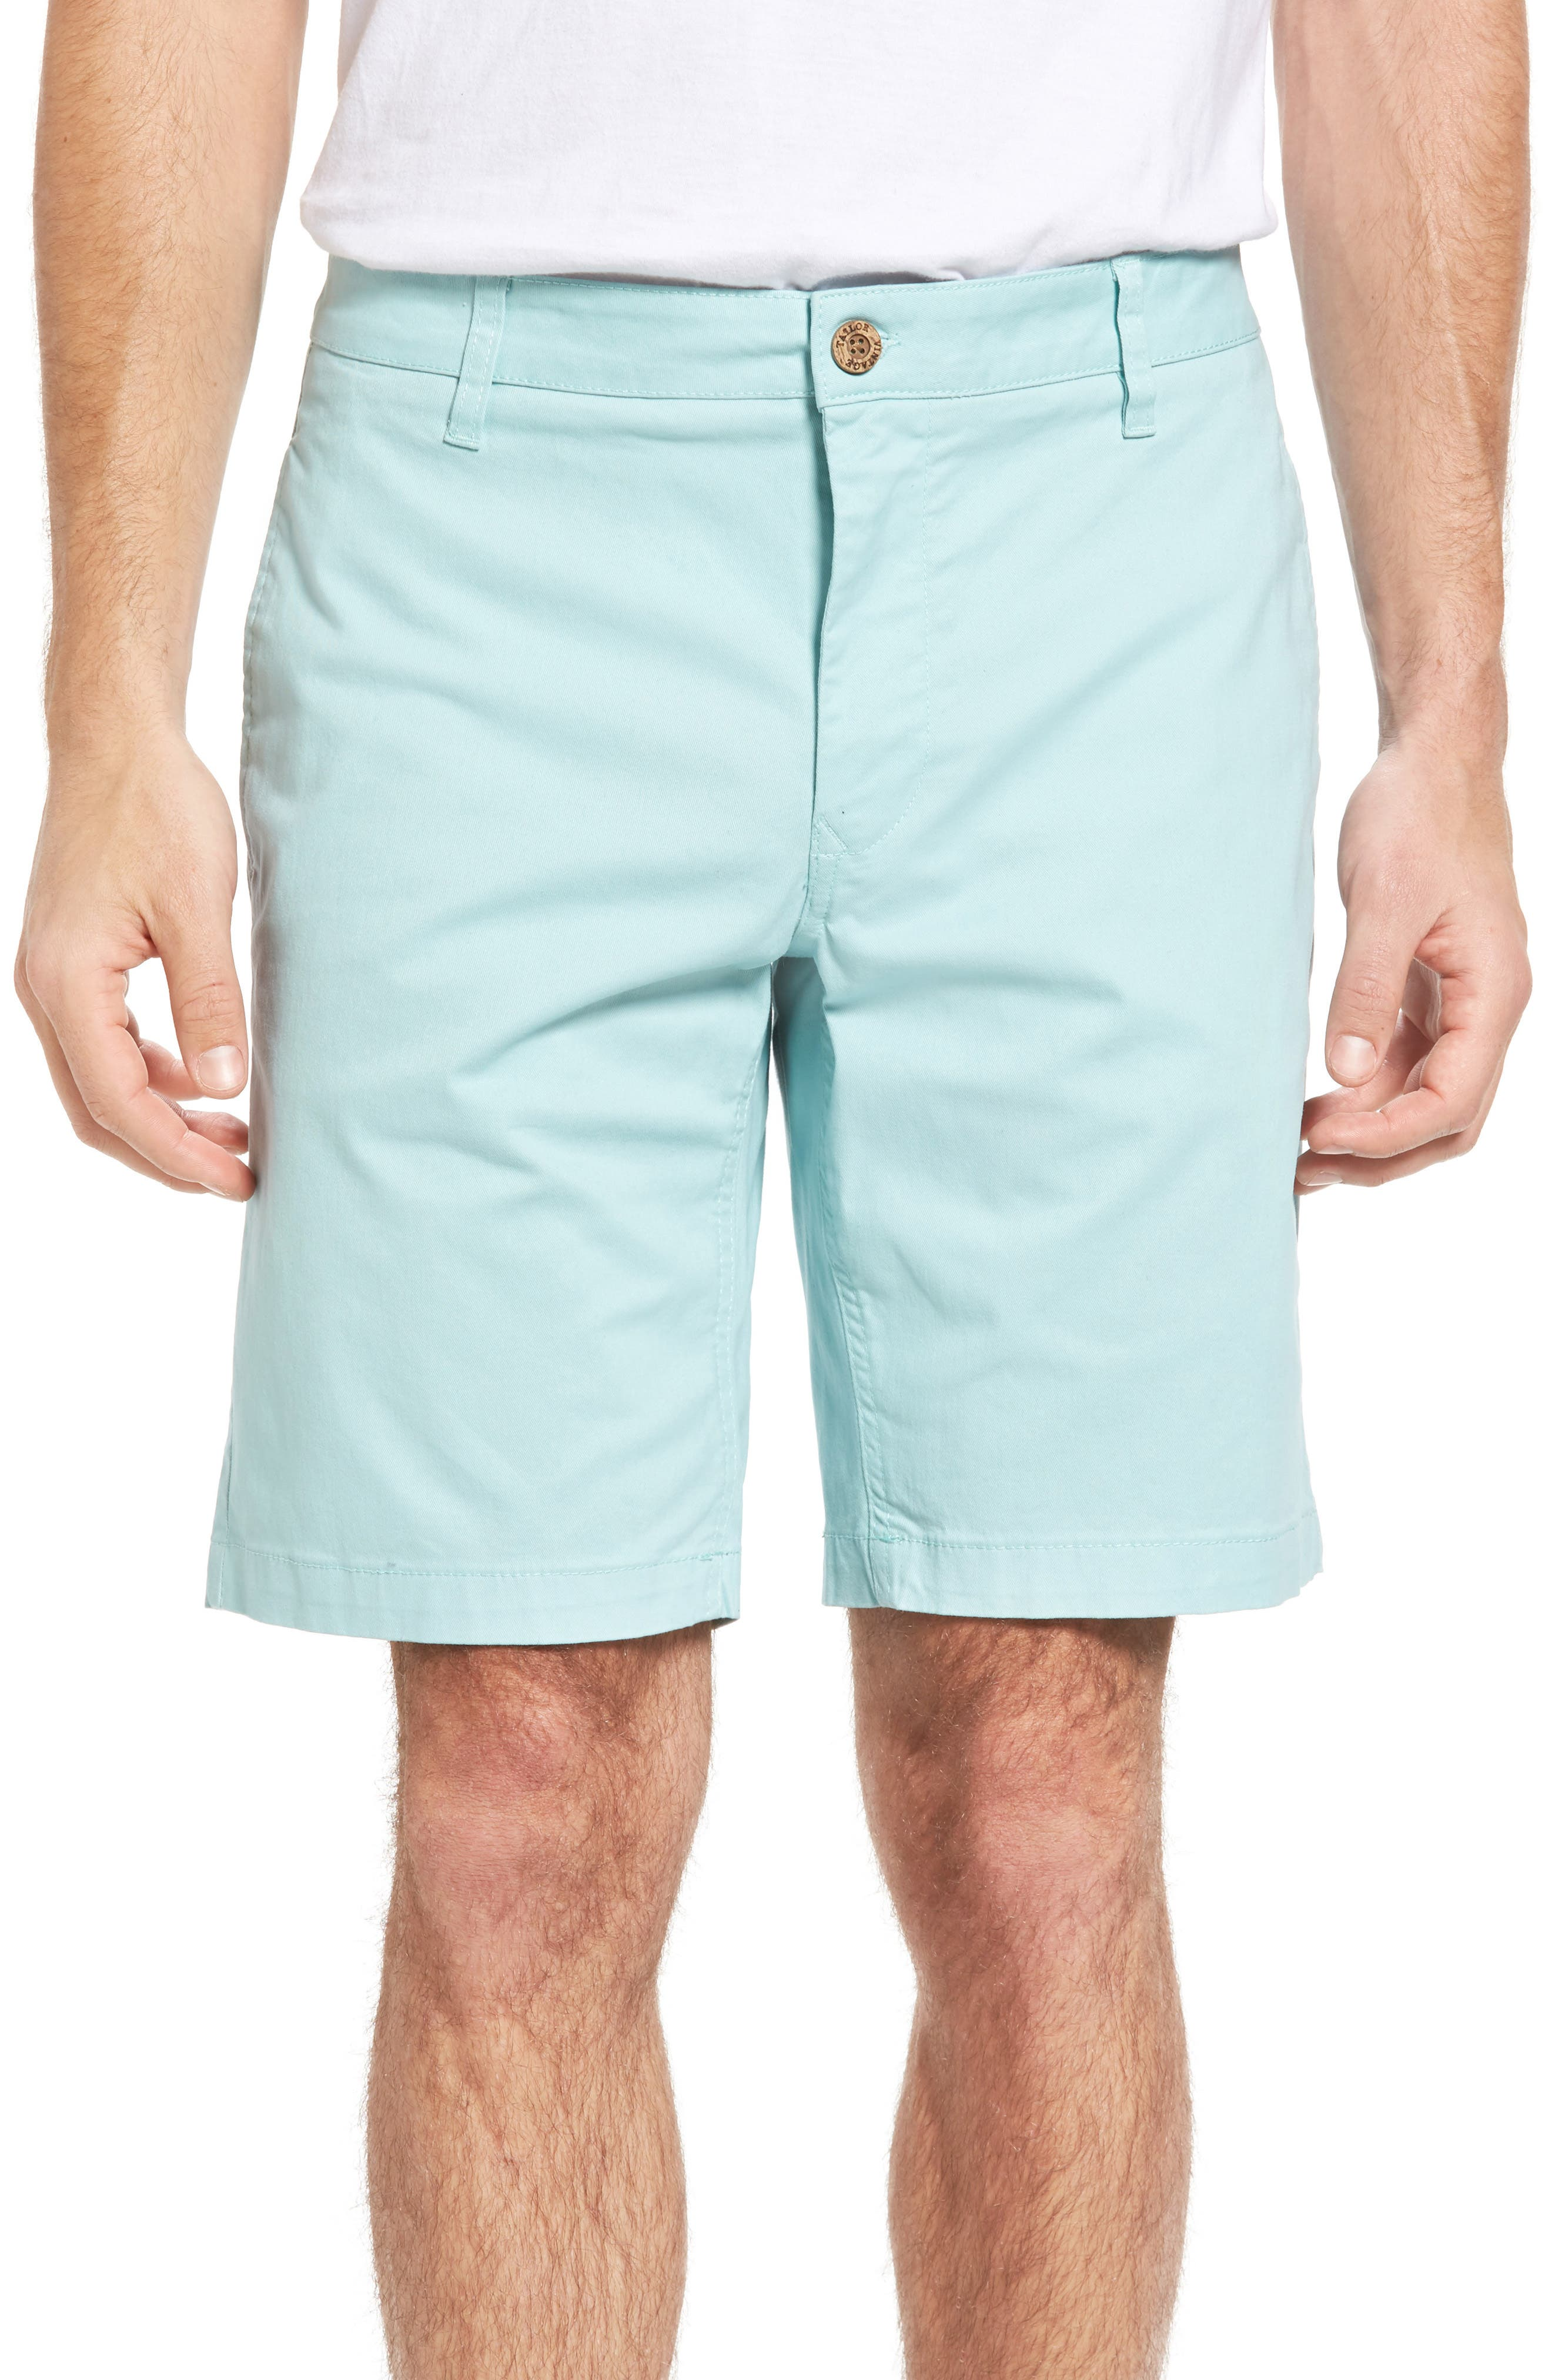 Stretch Twill Walking Shorts,                         Main,                         color, Canal Blue